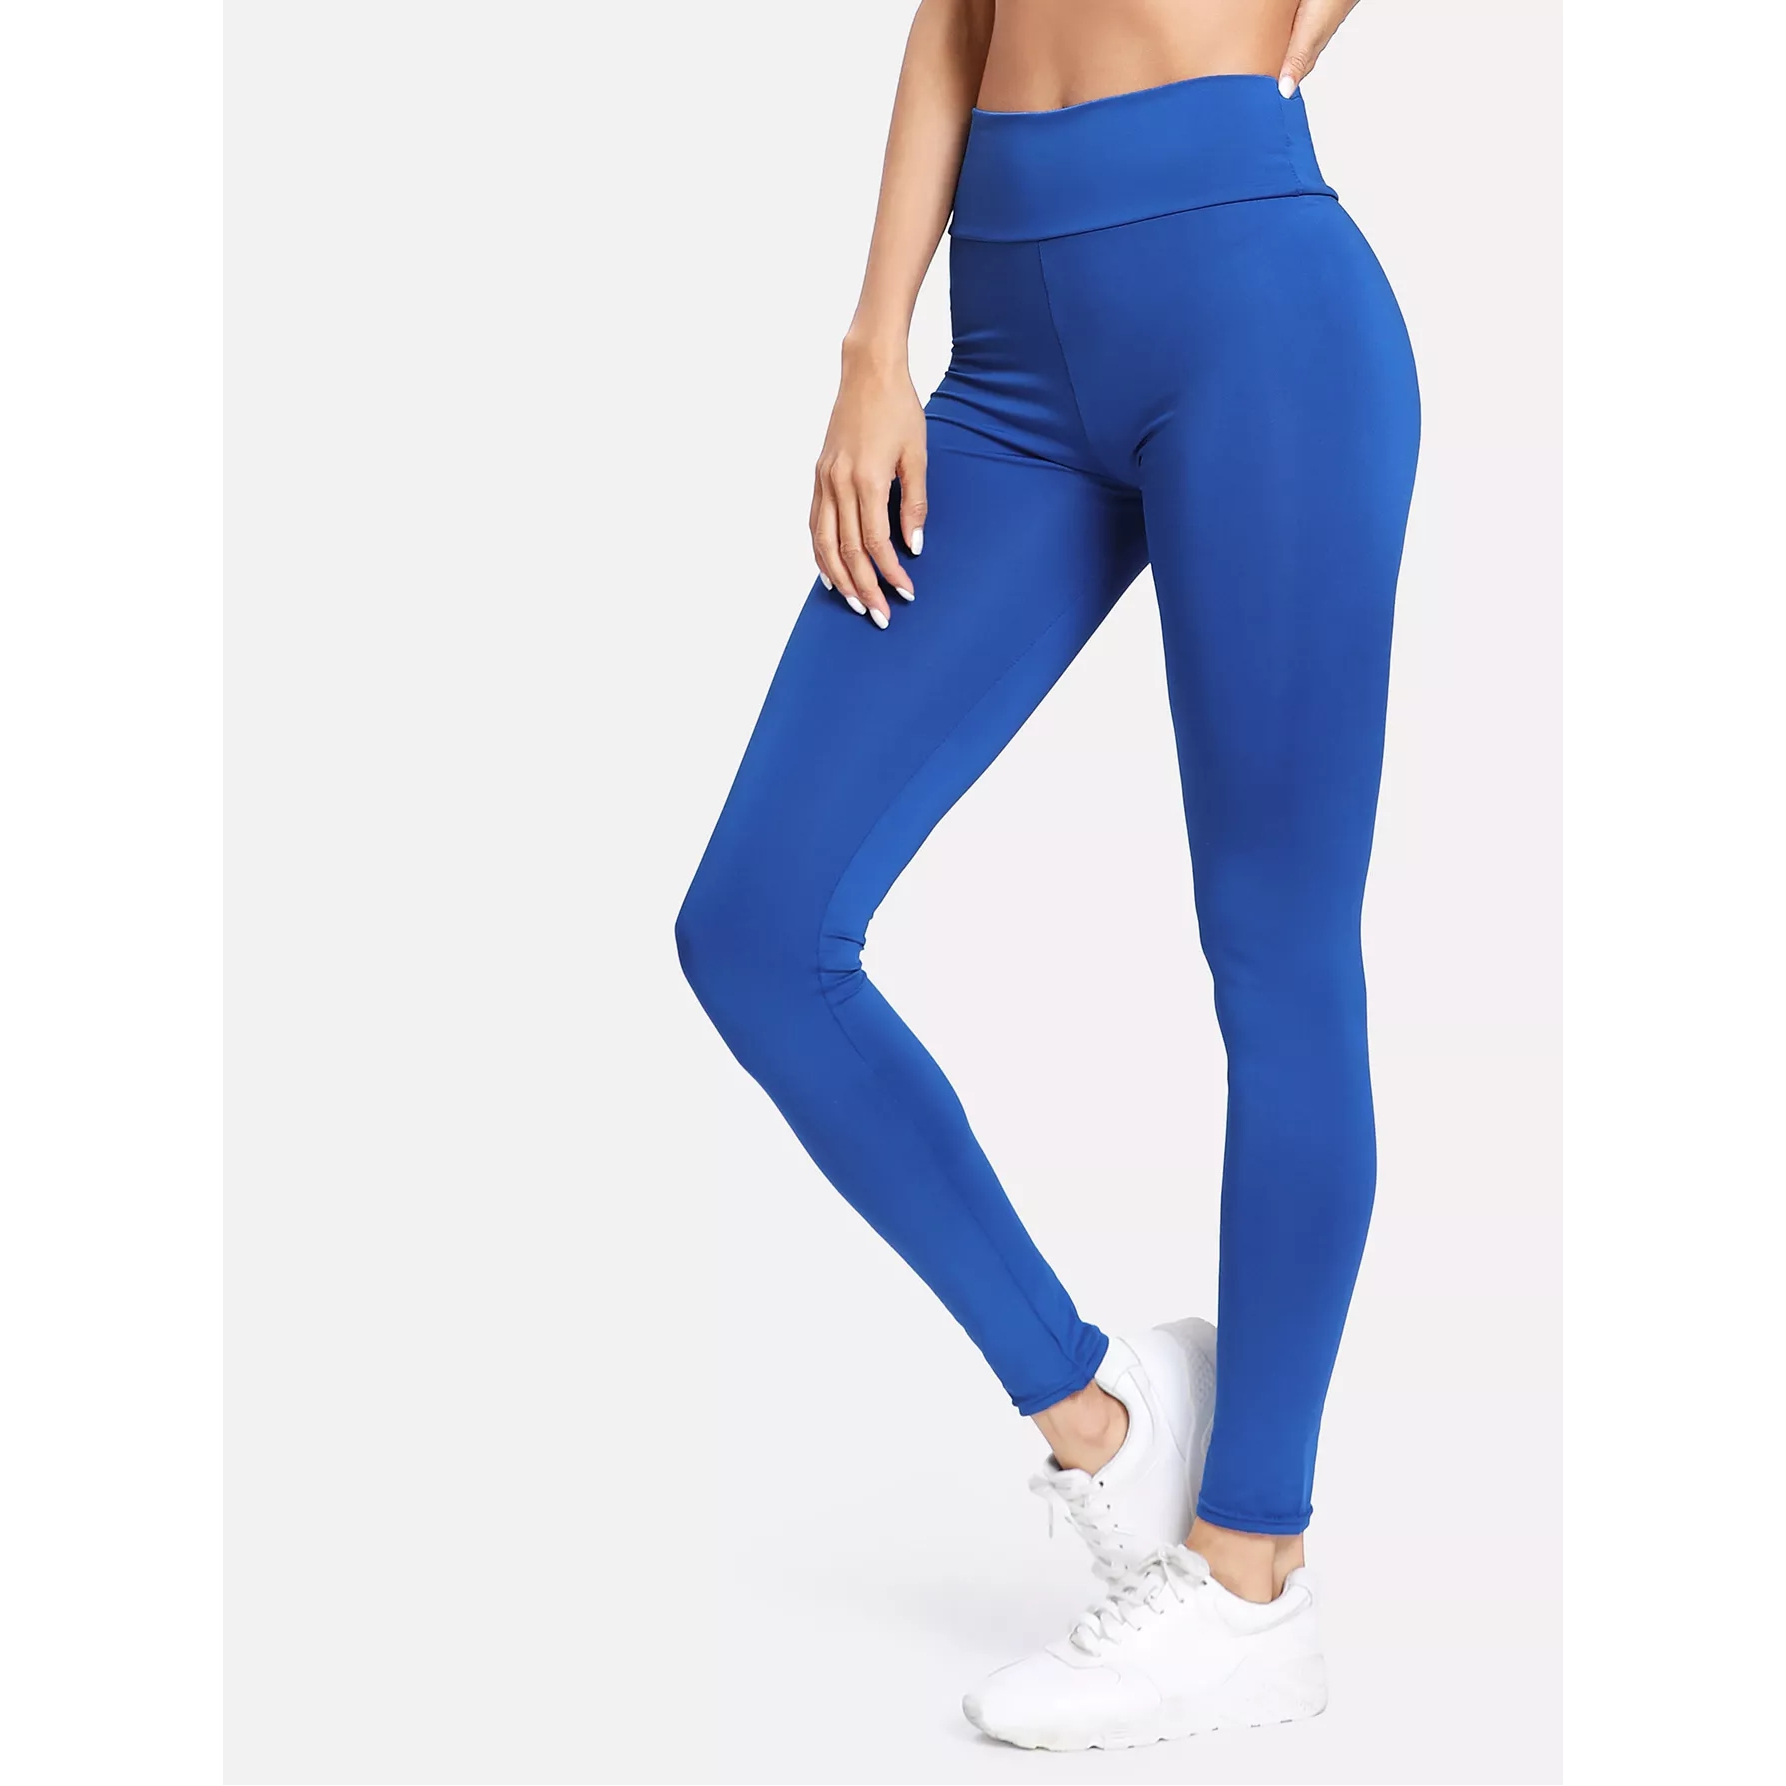 Women's Solid Slim Leggings Trousers Thin Women Leggins Elbows For Fitness Legins Push Up Workout Jeggings Tayt Sportleggings